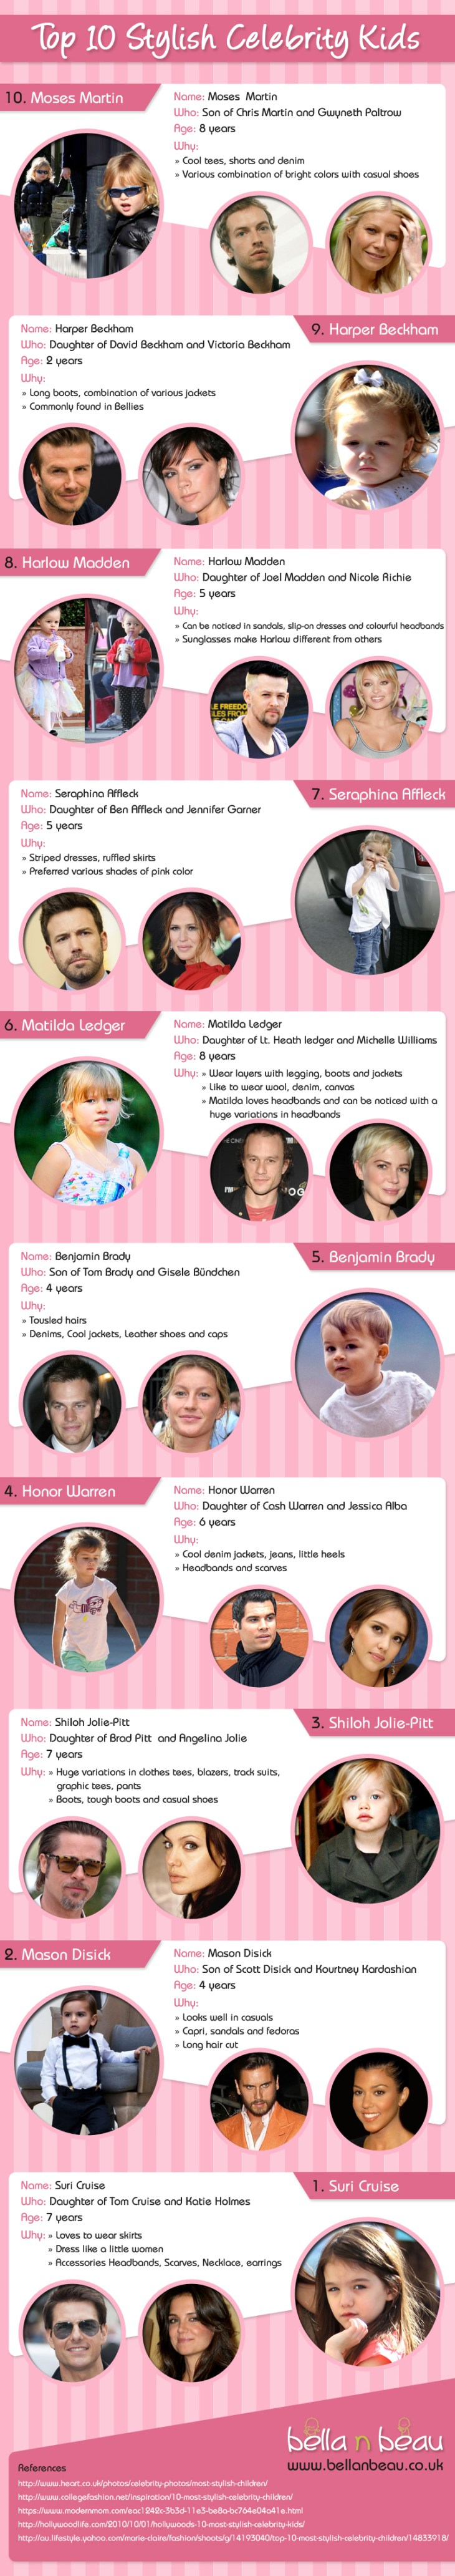 Cool Celebrity Kids Infographic